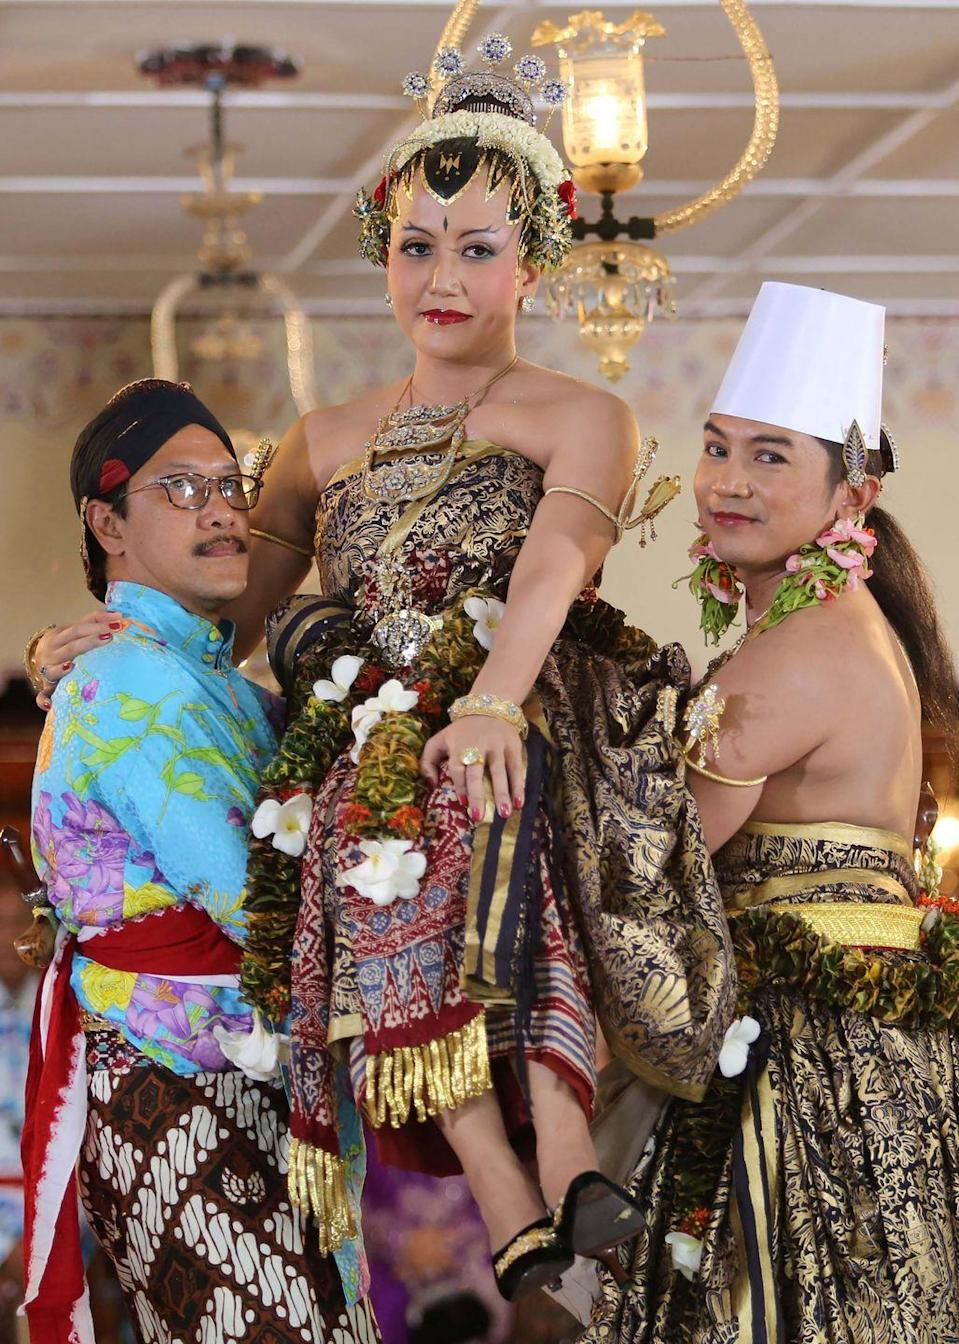 "<p>The wedding ceremony of Princess Hayu and Prince Notonegoro, a United Nations worker, spanned three days and saw many stunning, elaborate outfits and costumes in accordance with royal Indonesian wedding traditions. For the <a href=""https://www.today.com/news/princess-bride-crowds-celebrate-colorful-royal-indonesian-wedding-8C11467876"" rel=""nofollow noopener"" target=""_blank"" data-ylk=""slk:bathing ritual"" class=""link rapid-noclick-resp"">bathing ritual</a> element of the ceremony, which is done before the formal wedding vows takes place, the bride wore a cape of intricately woven flowers.</p>"